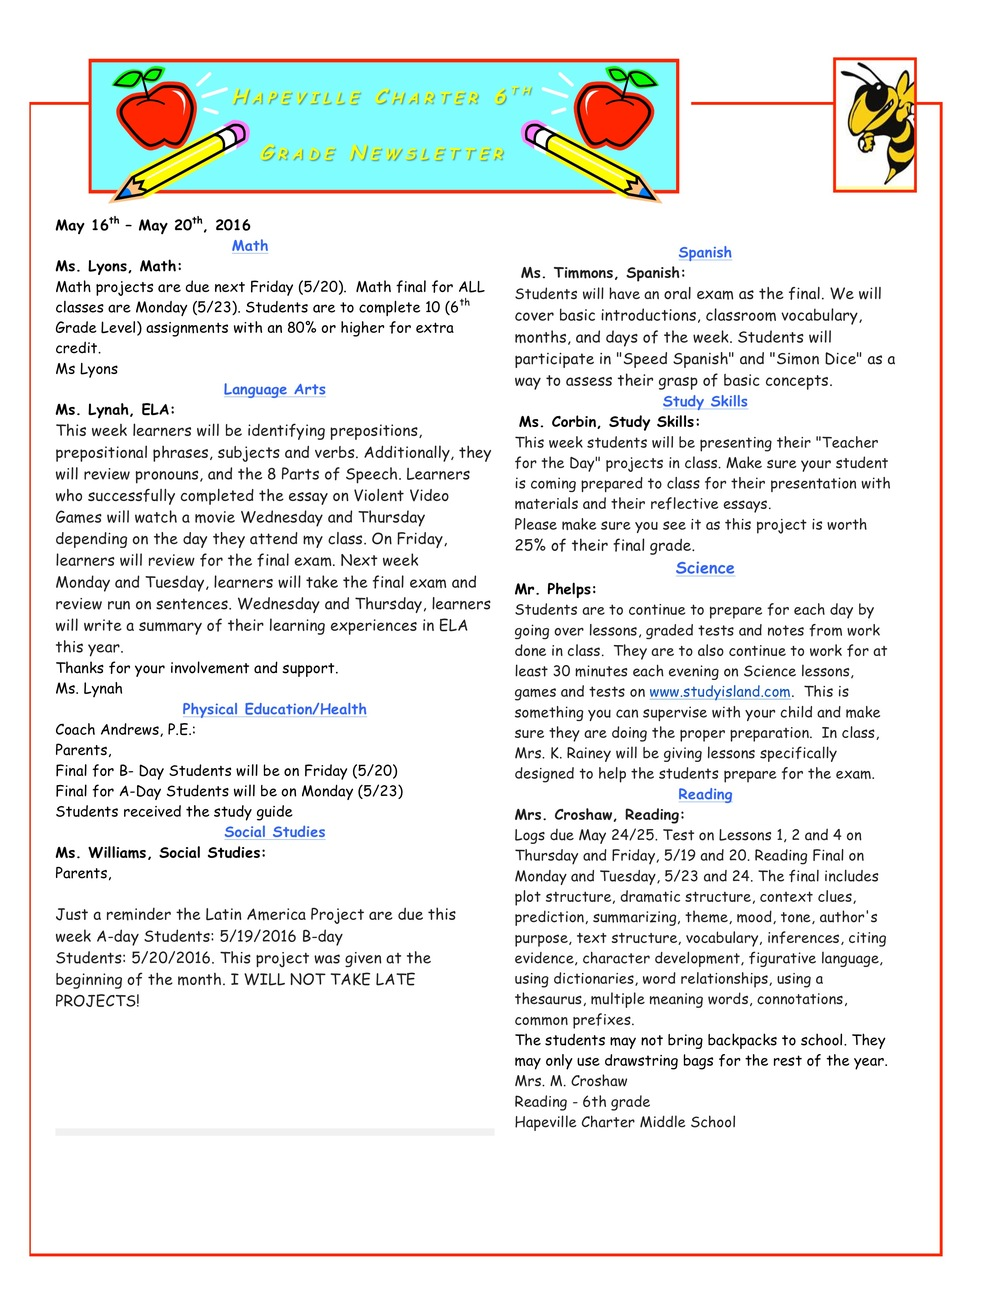 Newsletter Image6th Grade Newsletter 5-16.jpeg